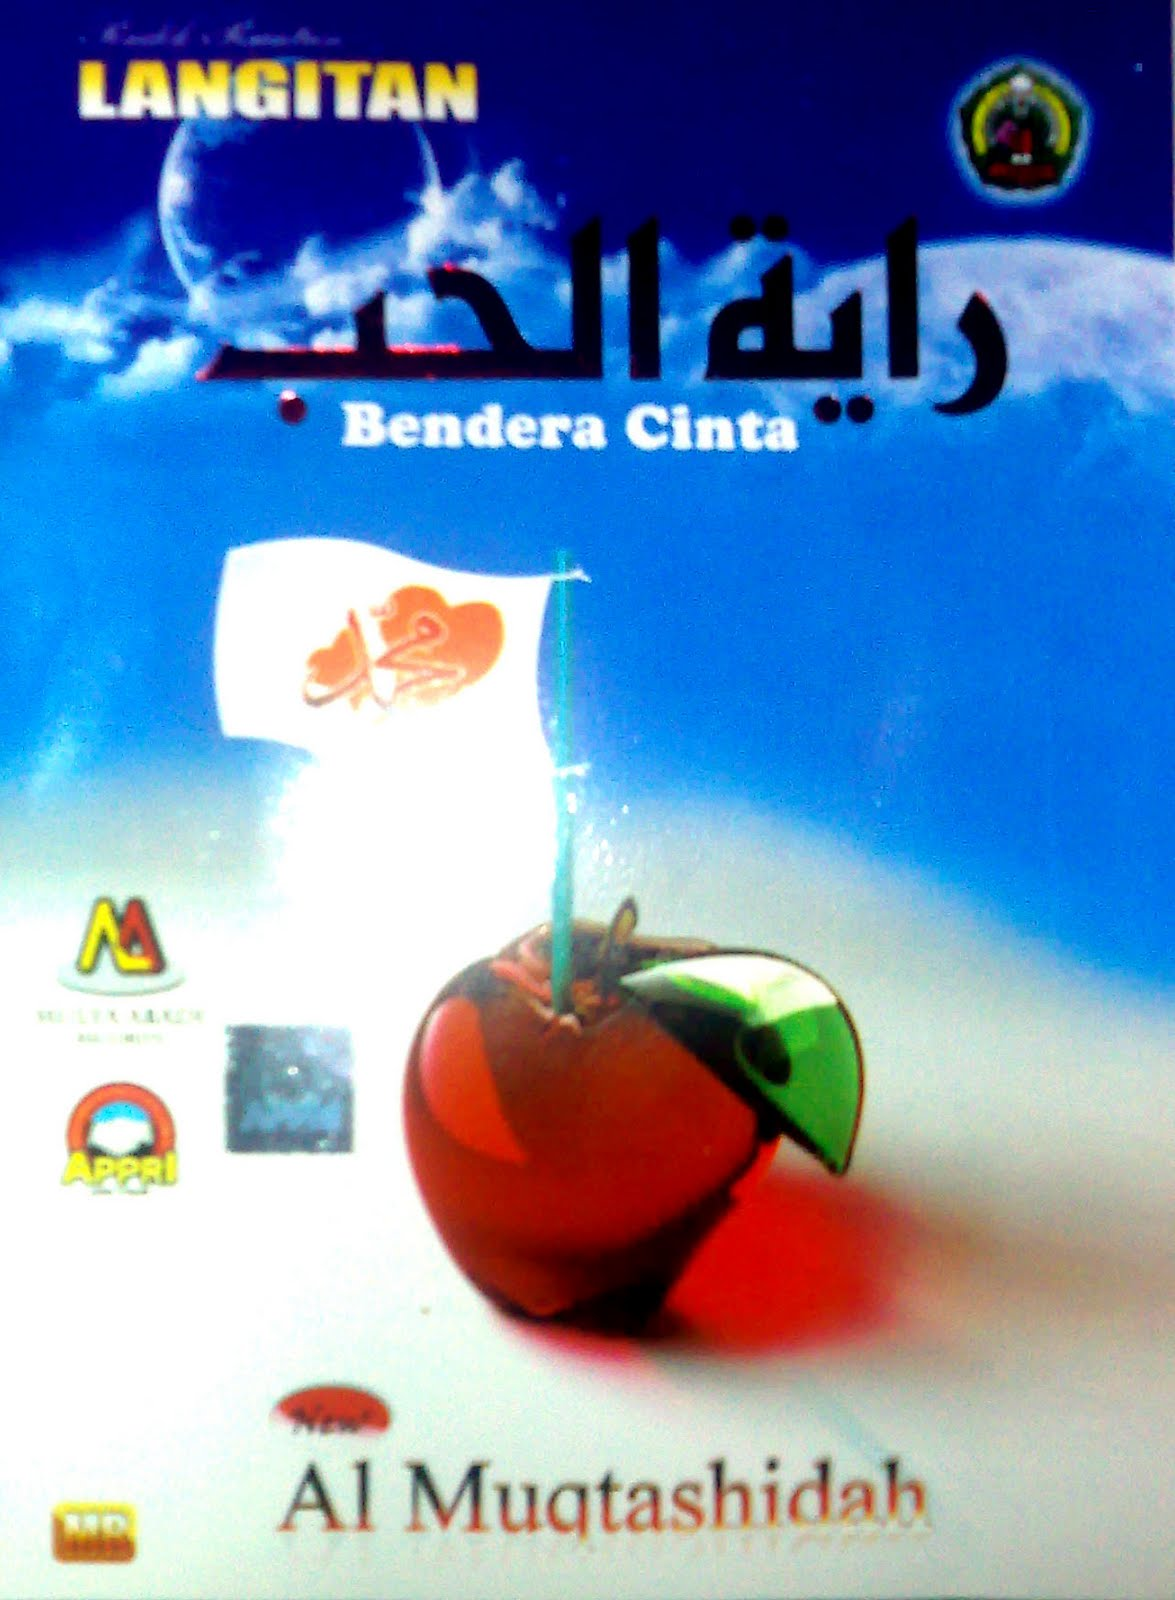 Album Bendera Cinta - Al Muqtashidah Group Langitan